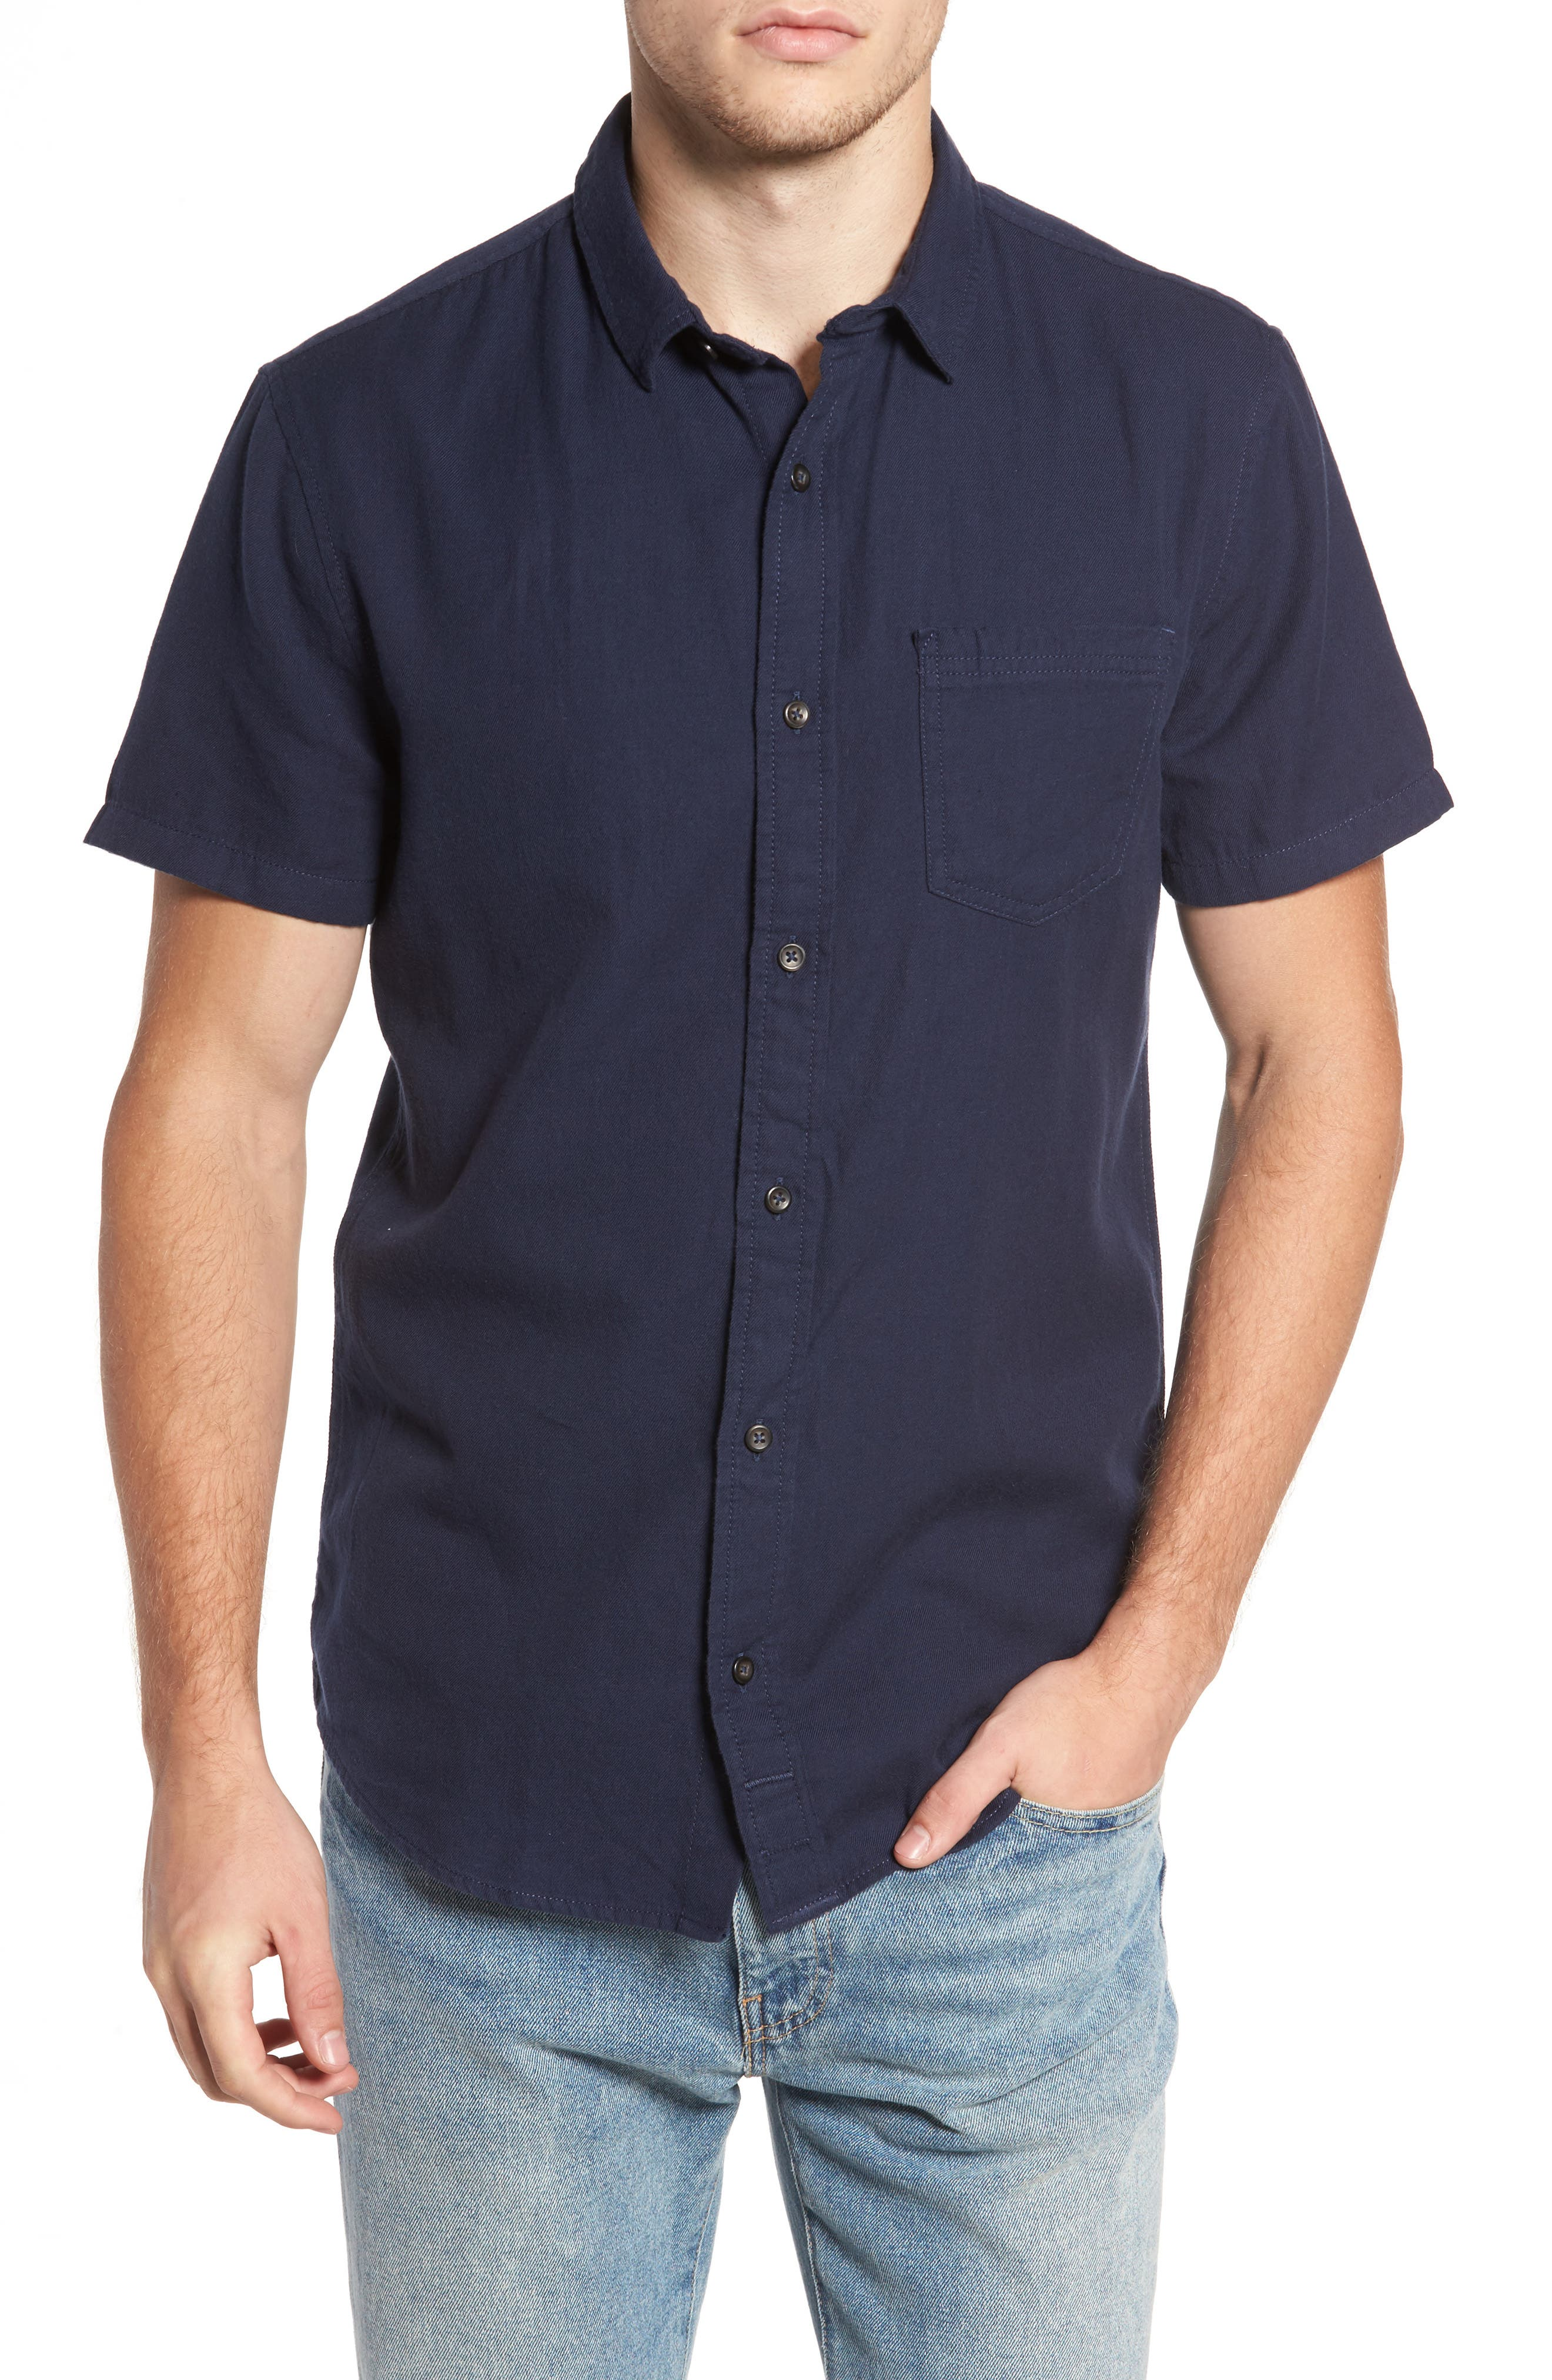 Alternate Image 1 Selected - The Rail Short Sleeve Twill Shirt